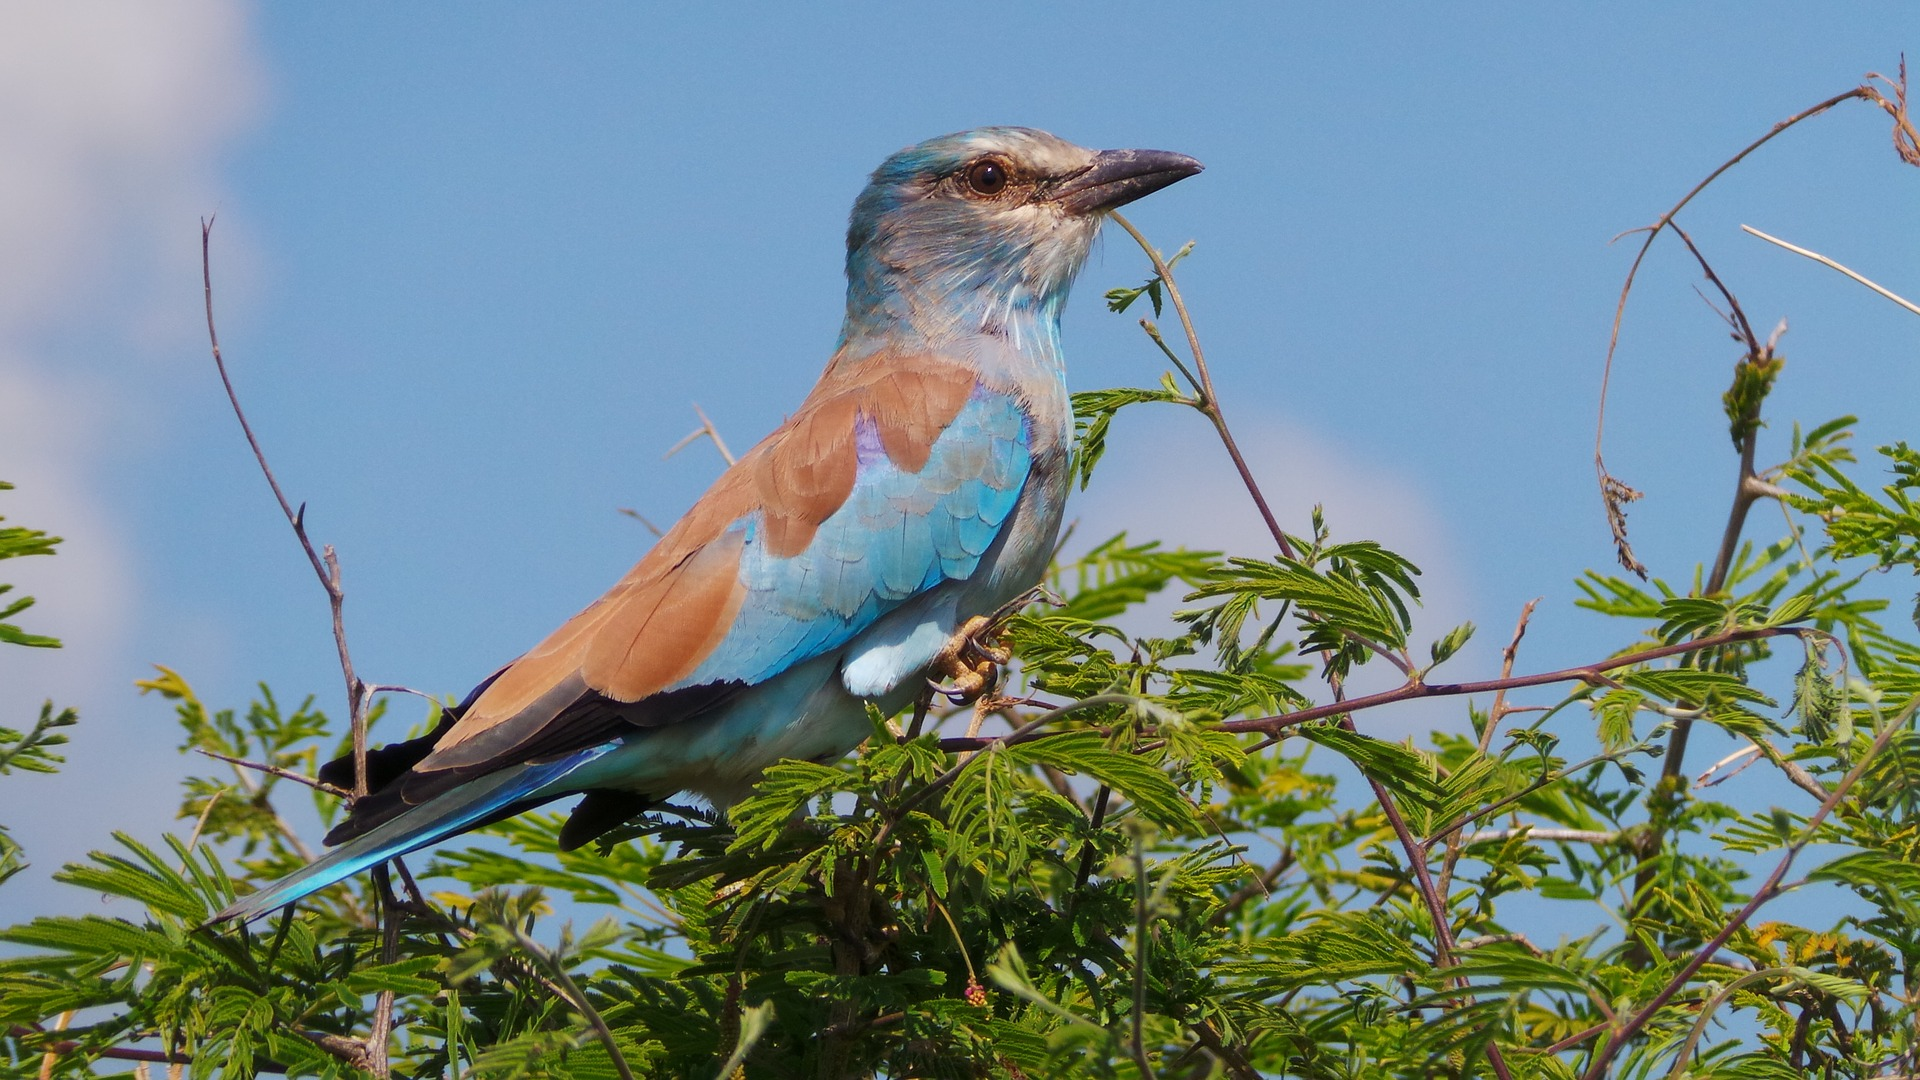 lilac-breasted-roller-1422294_1920.jpg